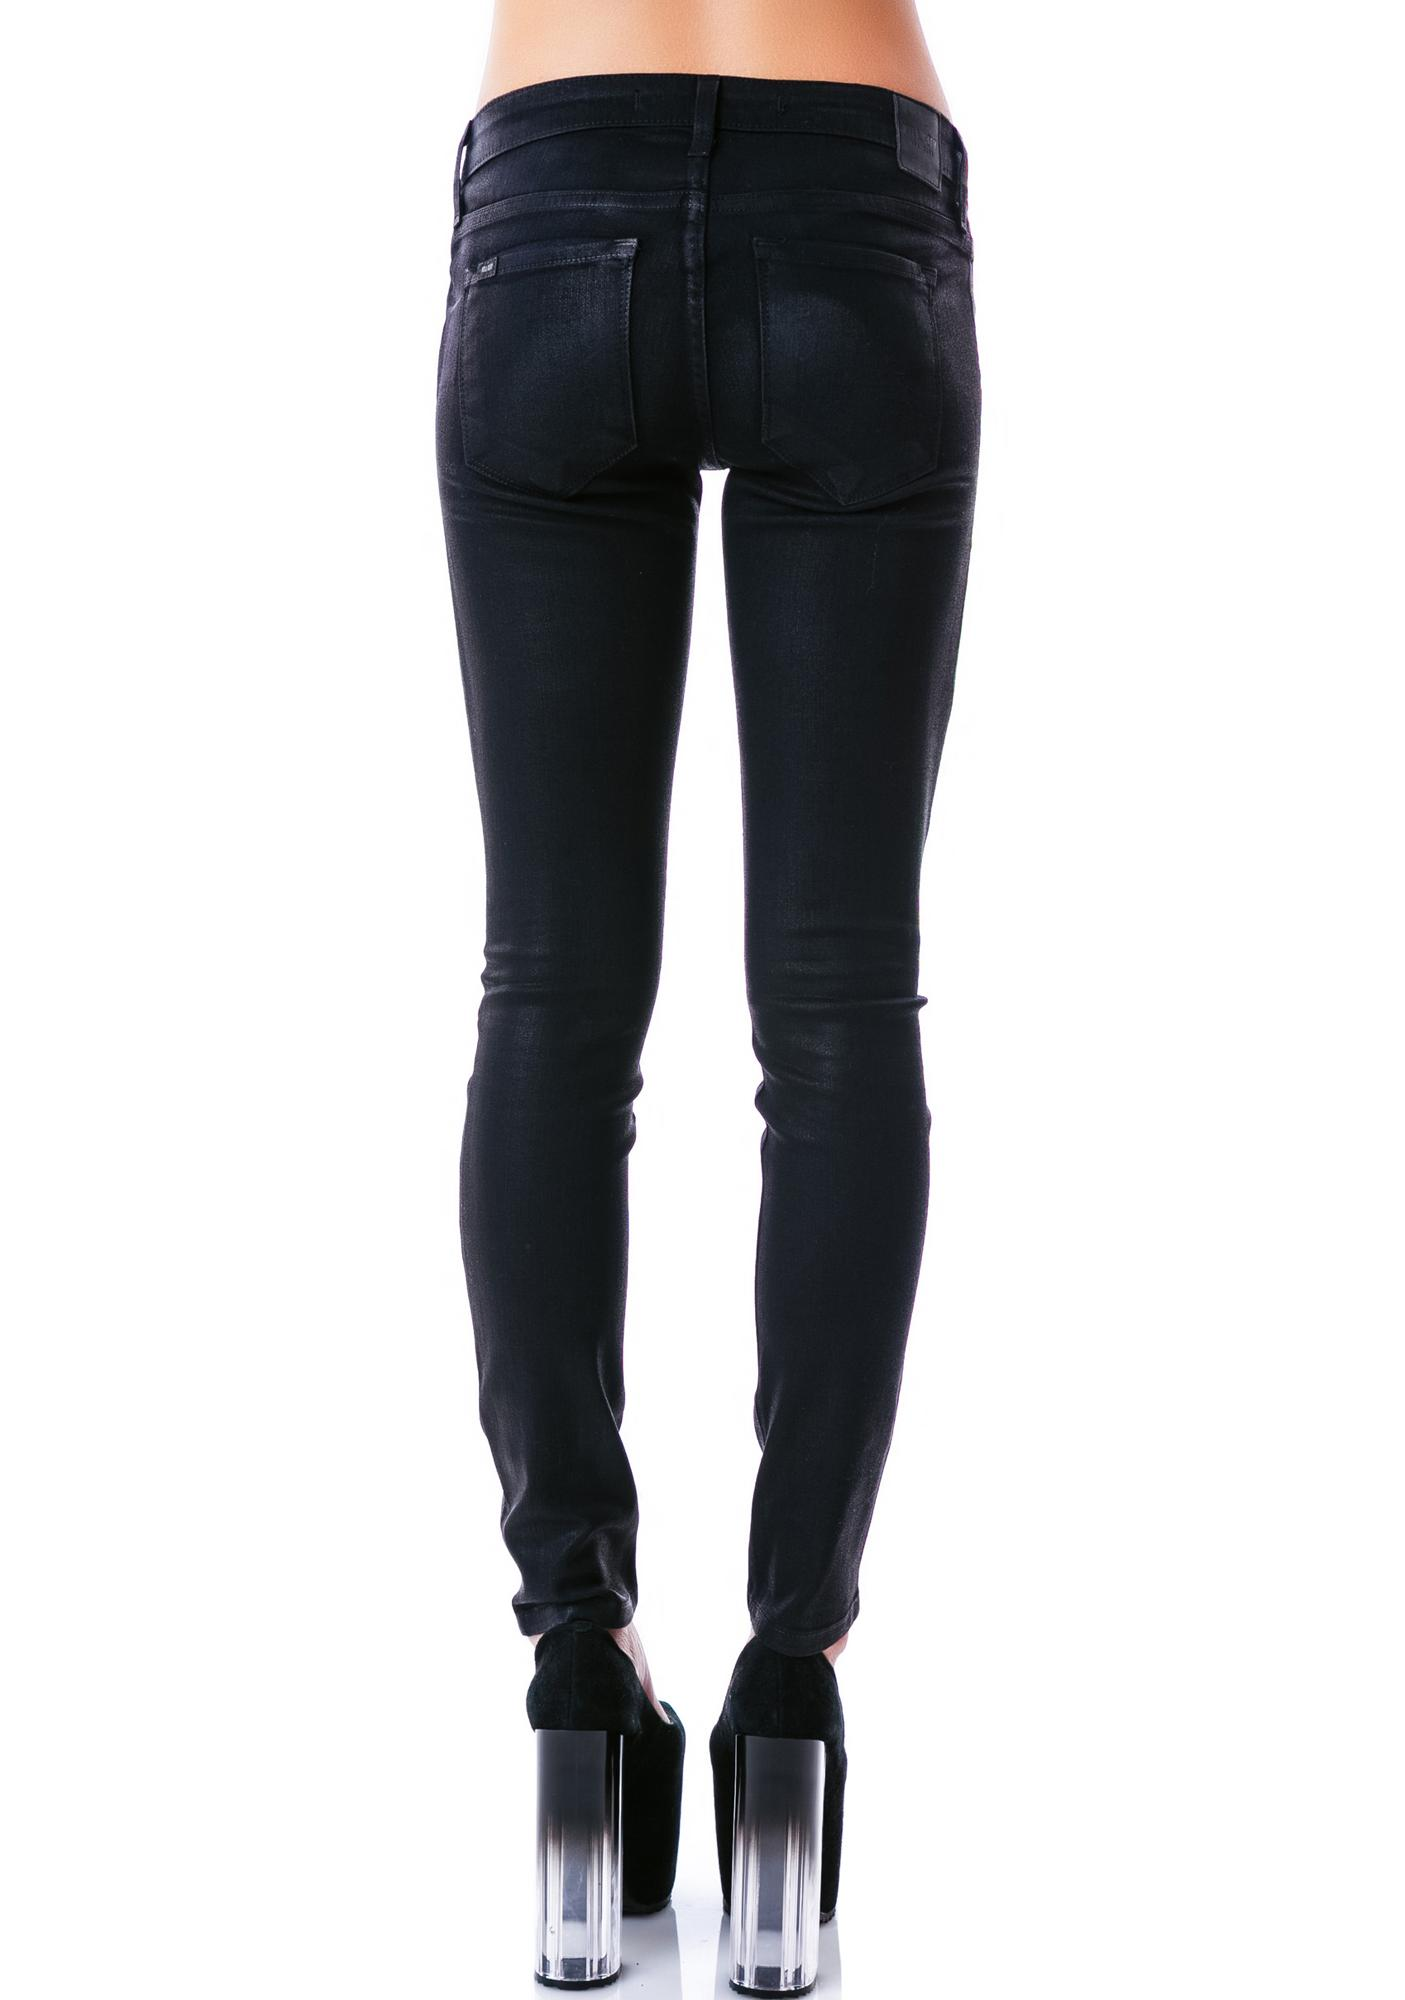 Kill City Wax Coated Stretch Junkie Jeans